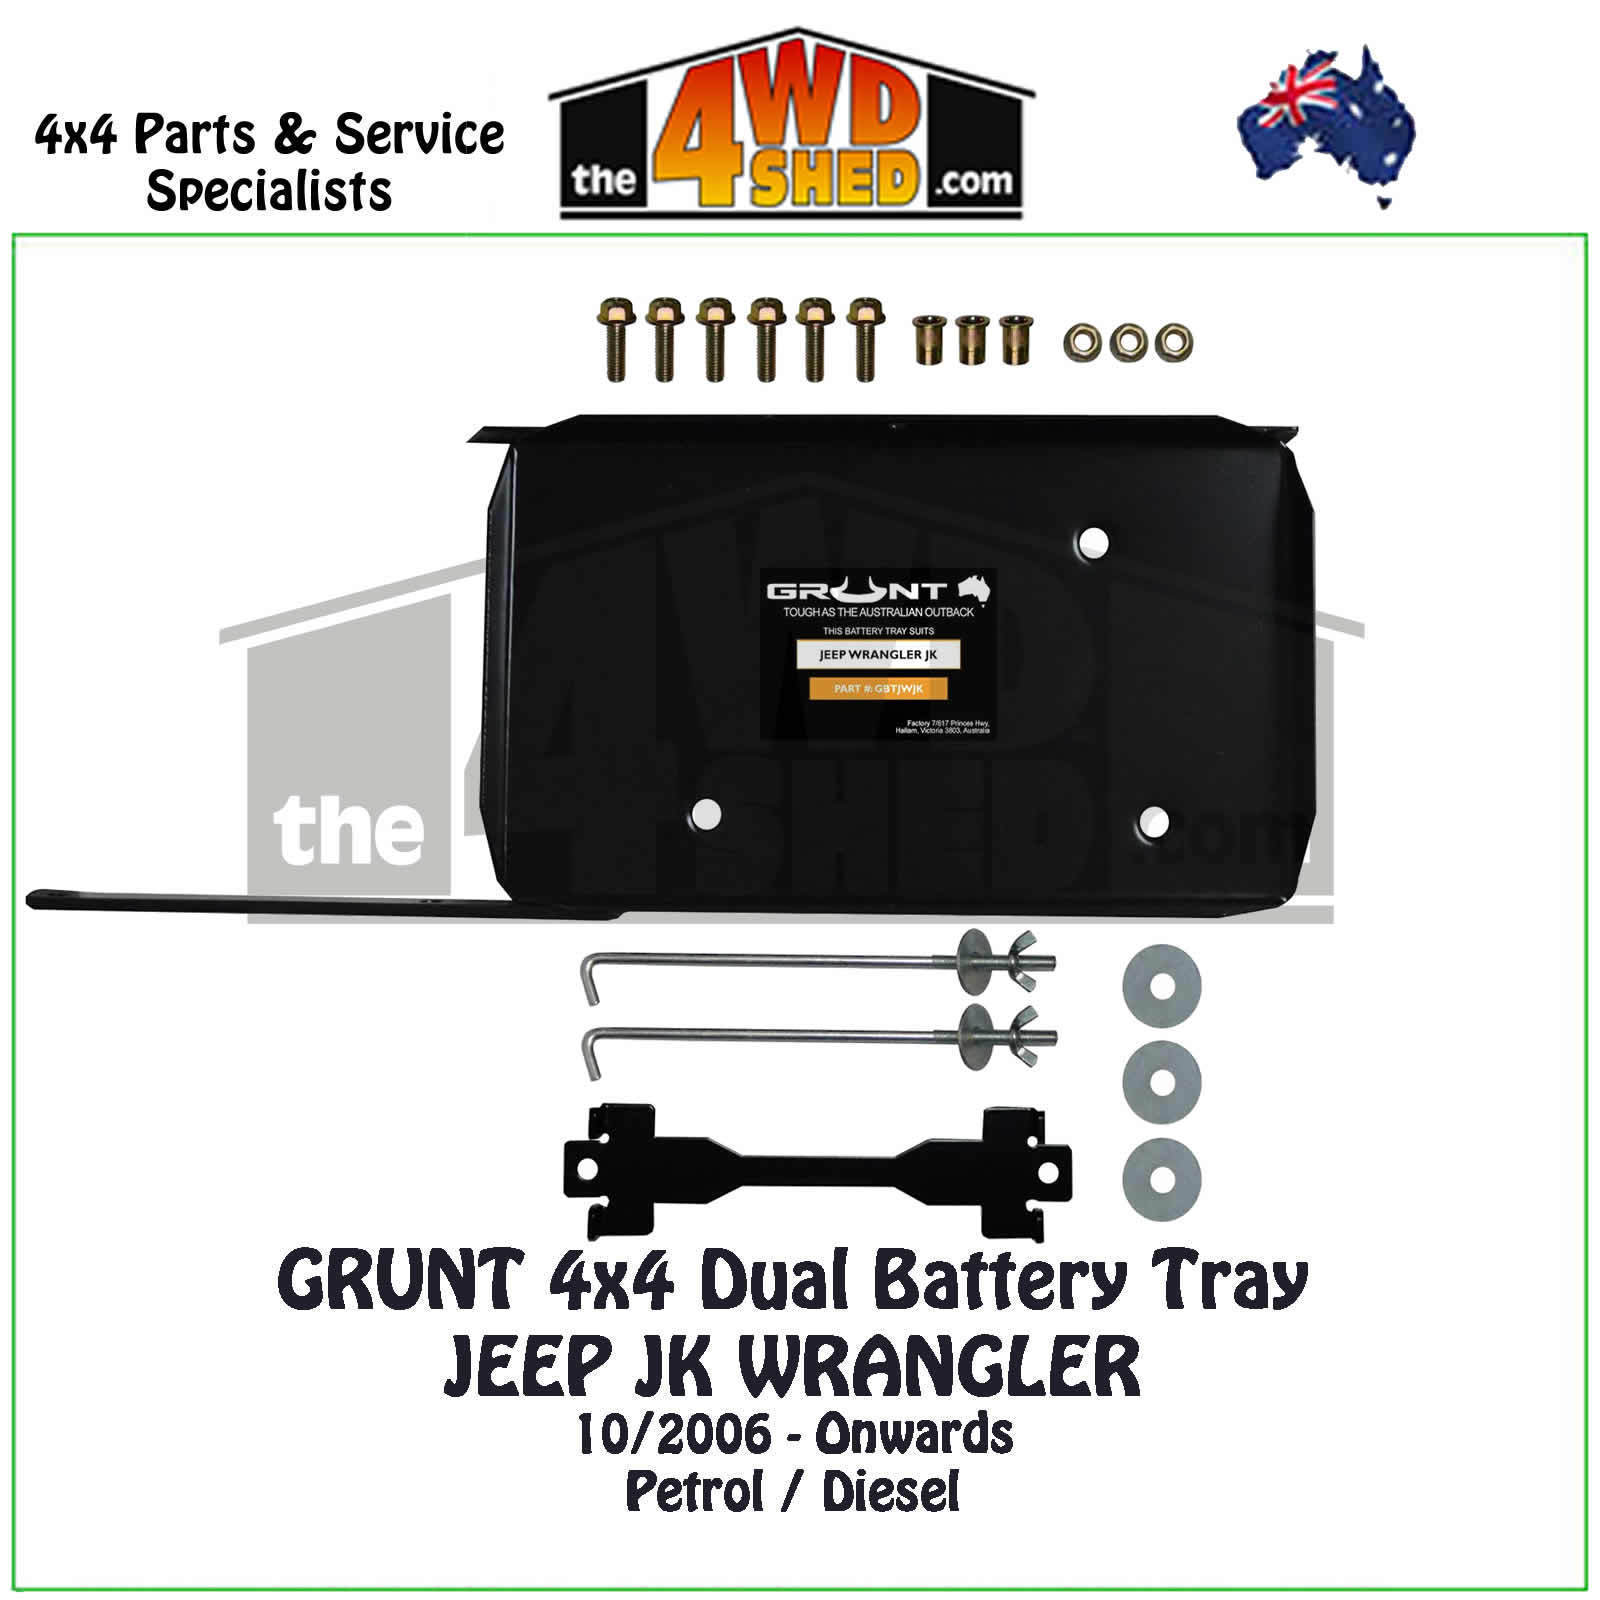 Jeep Jk Wrangler Dual Battery Tray Grunt 4x4 Wiring